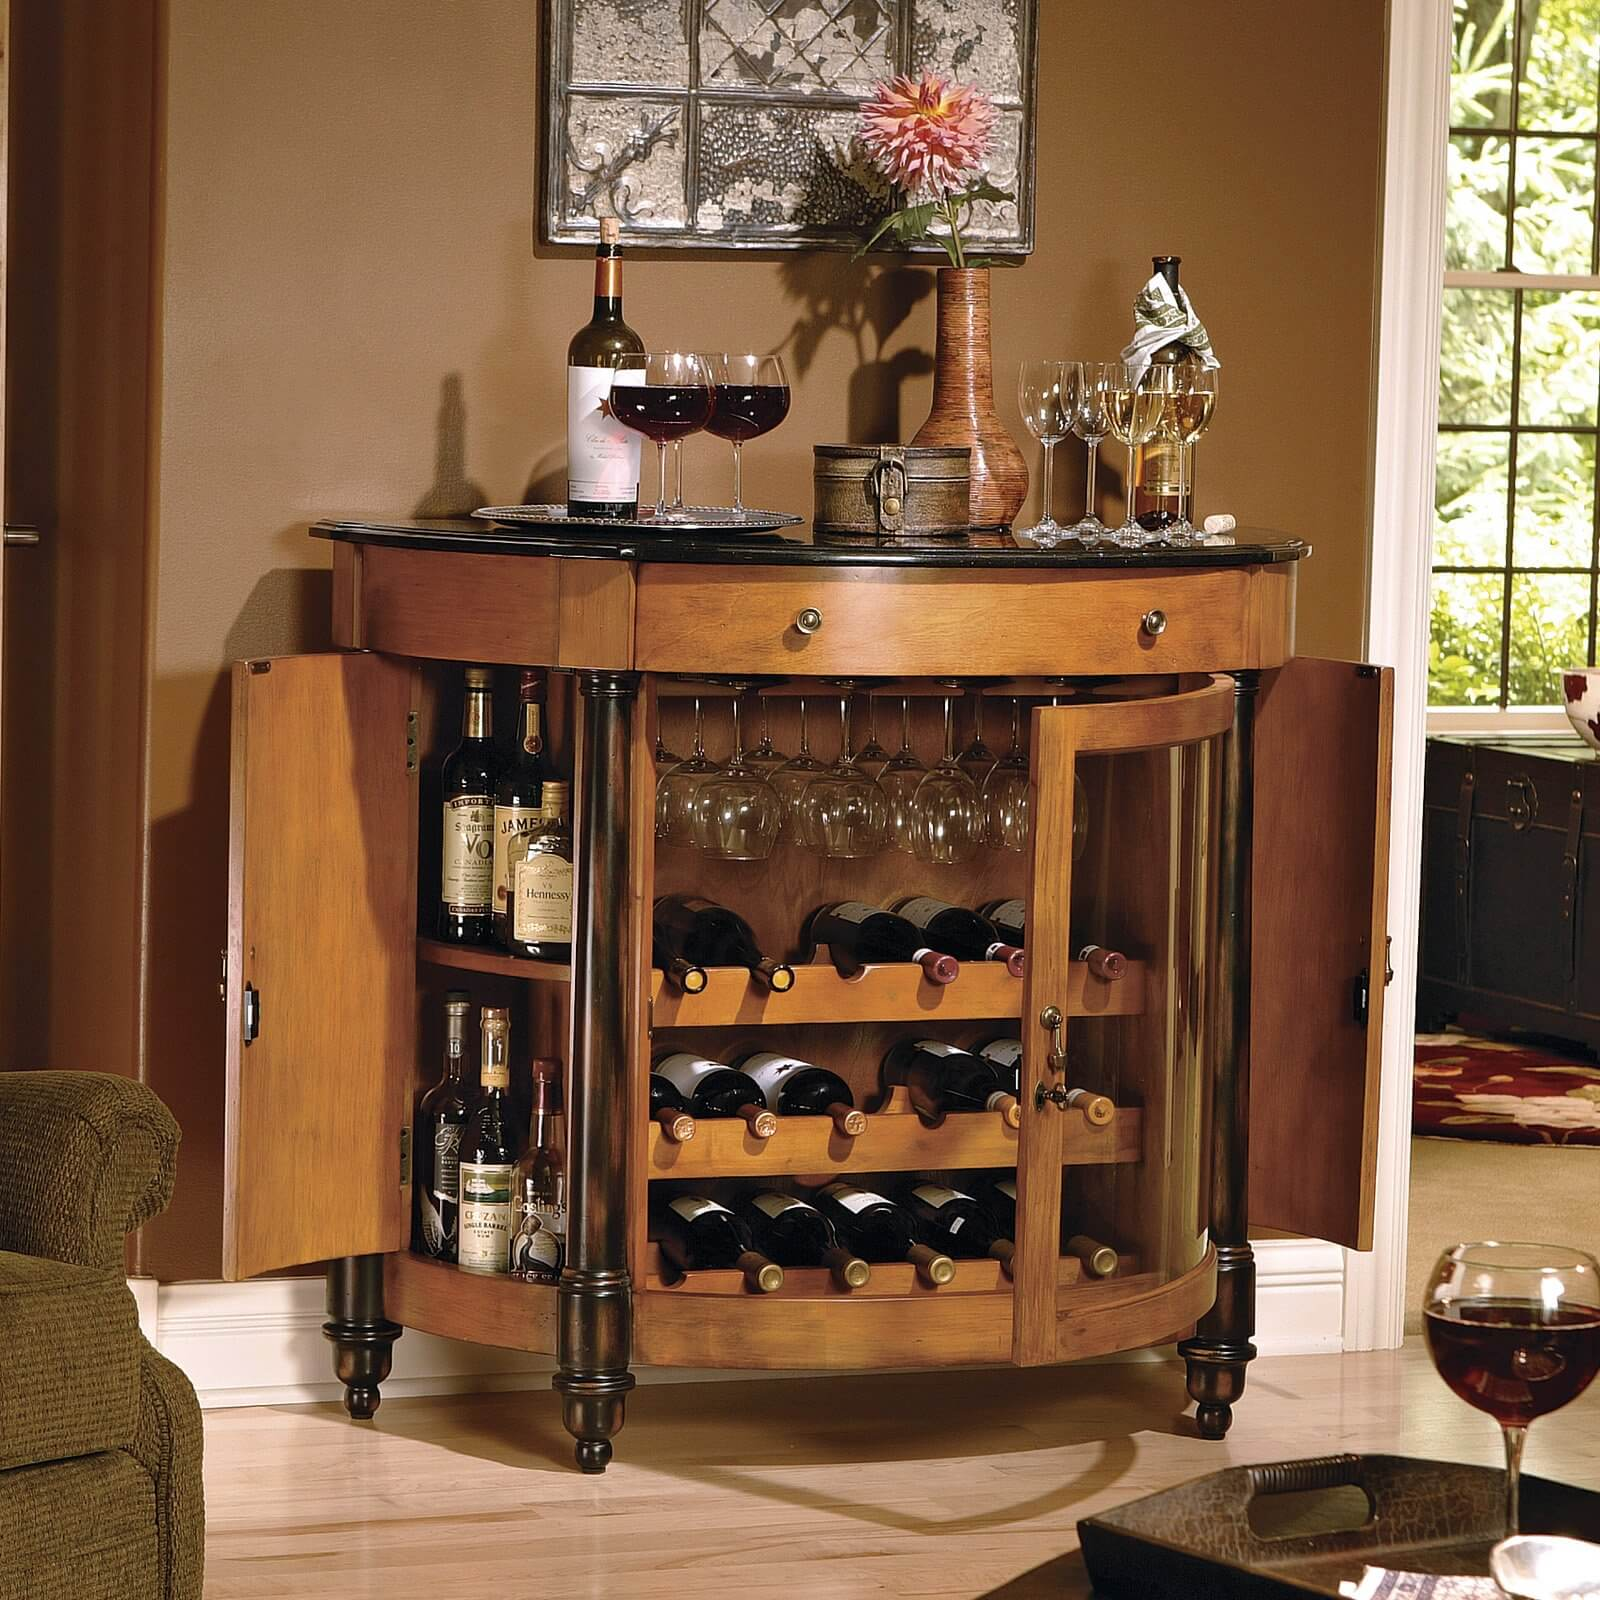 hereu0027s a home bar for wine lovers with itu0027s 18 bottle unique furniture e5 unique